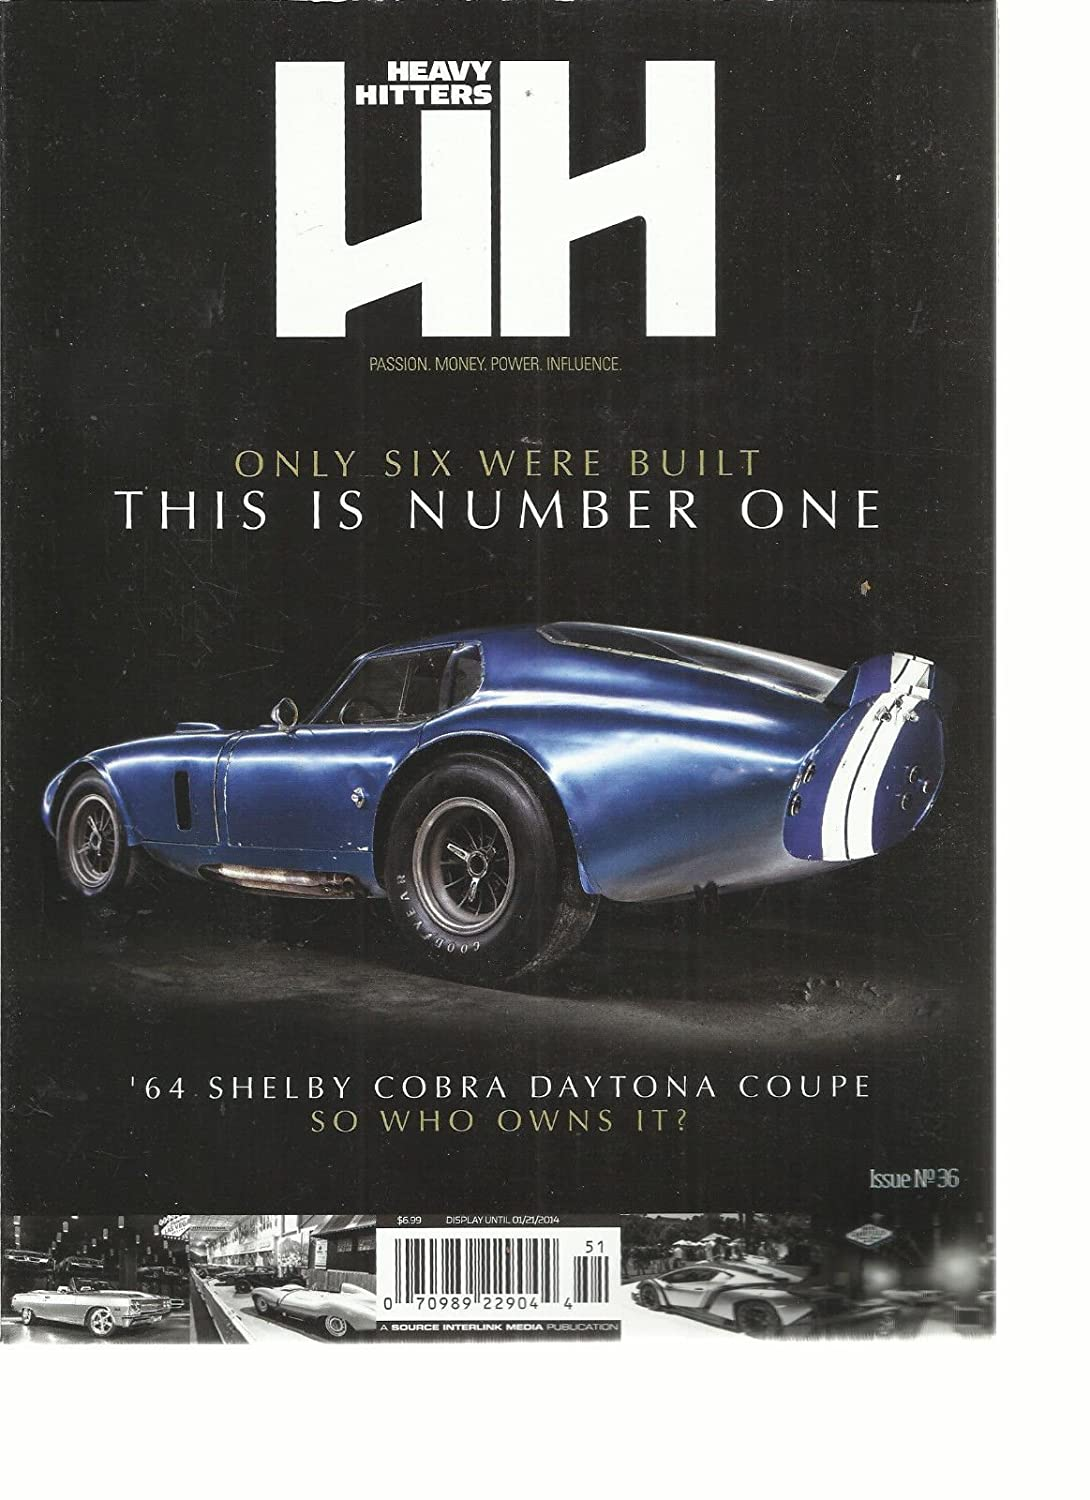 HH HEAVY HITTERS PASSION, MONEY, POWER, INFLUENCE, ISSUE NO. 36 (ONLY 6 BUILT s3457